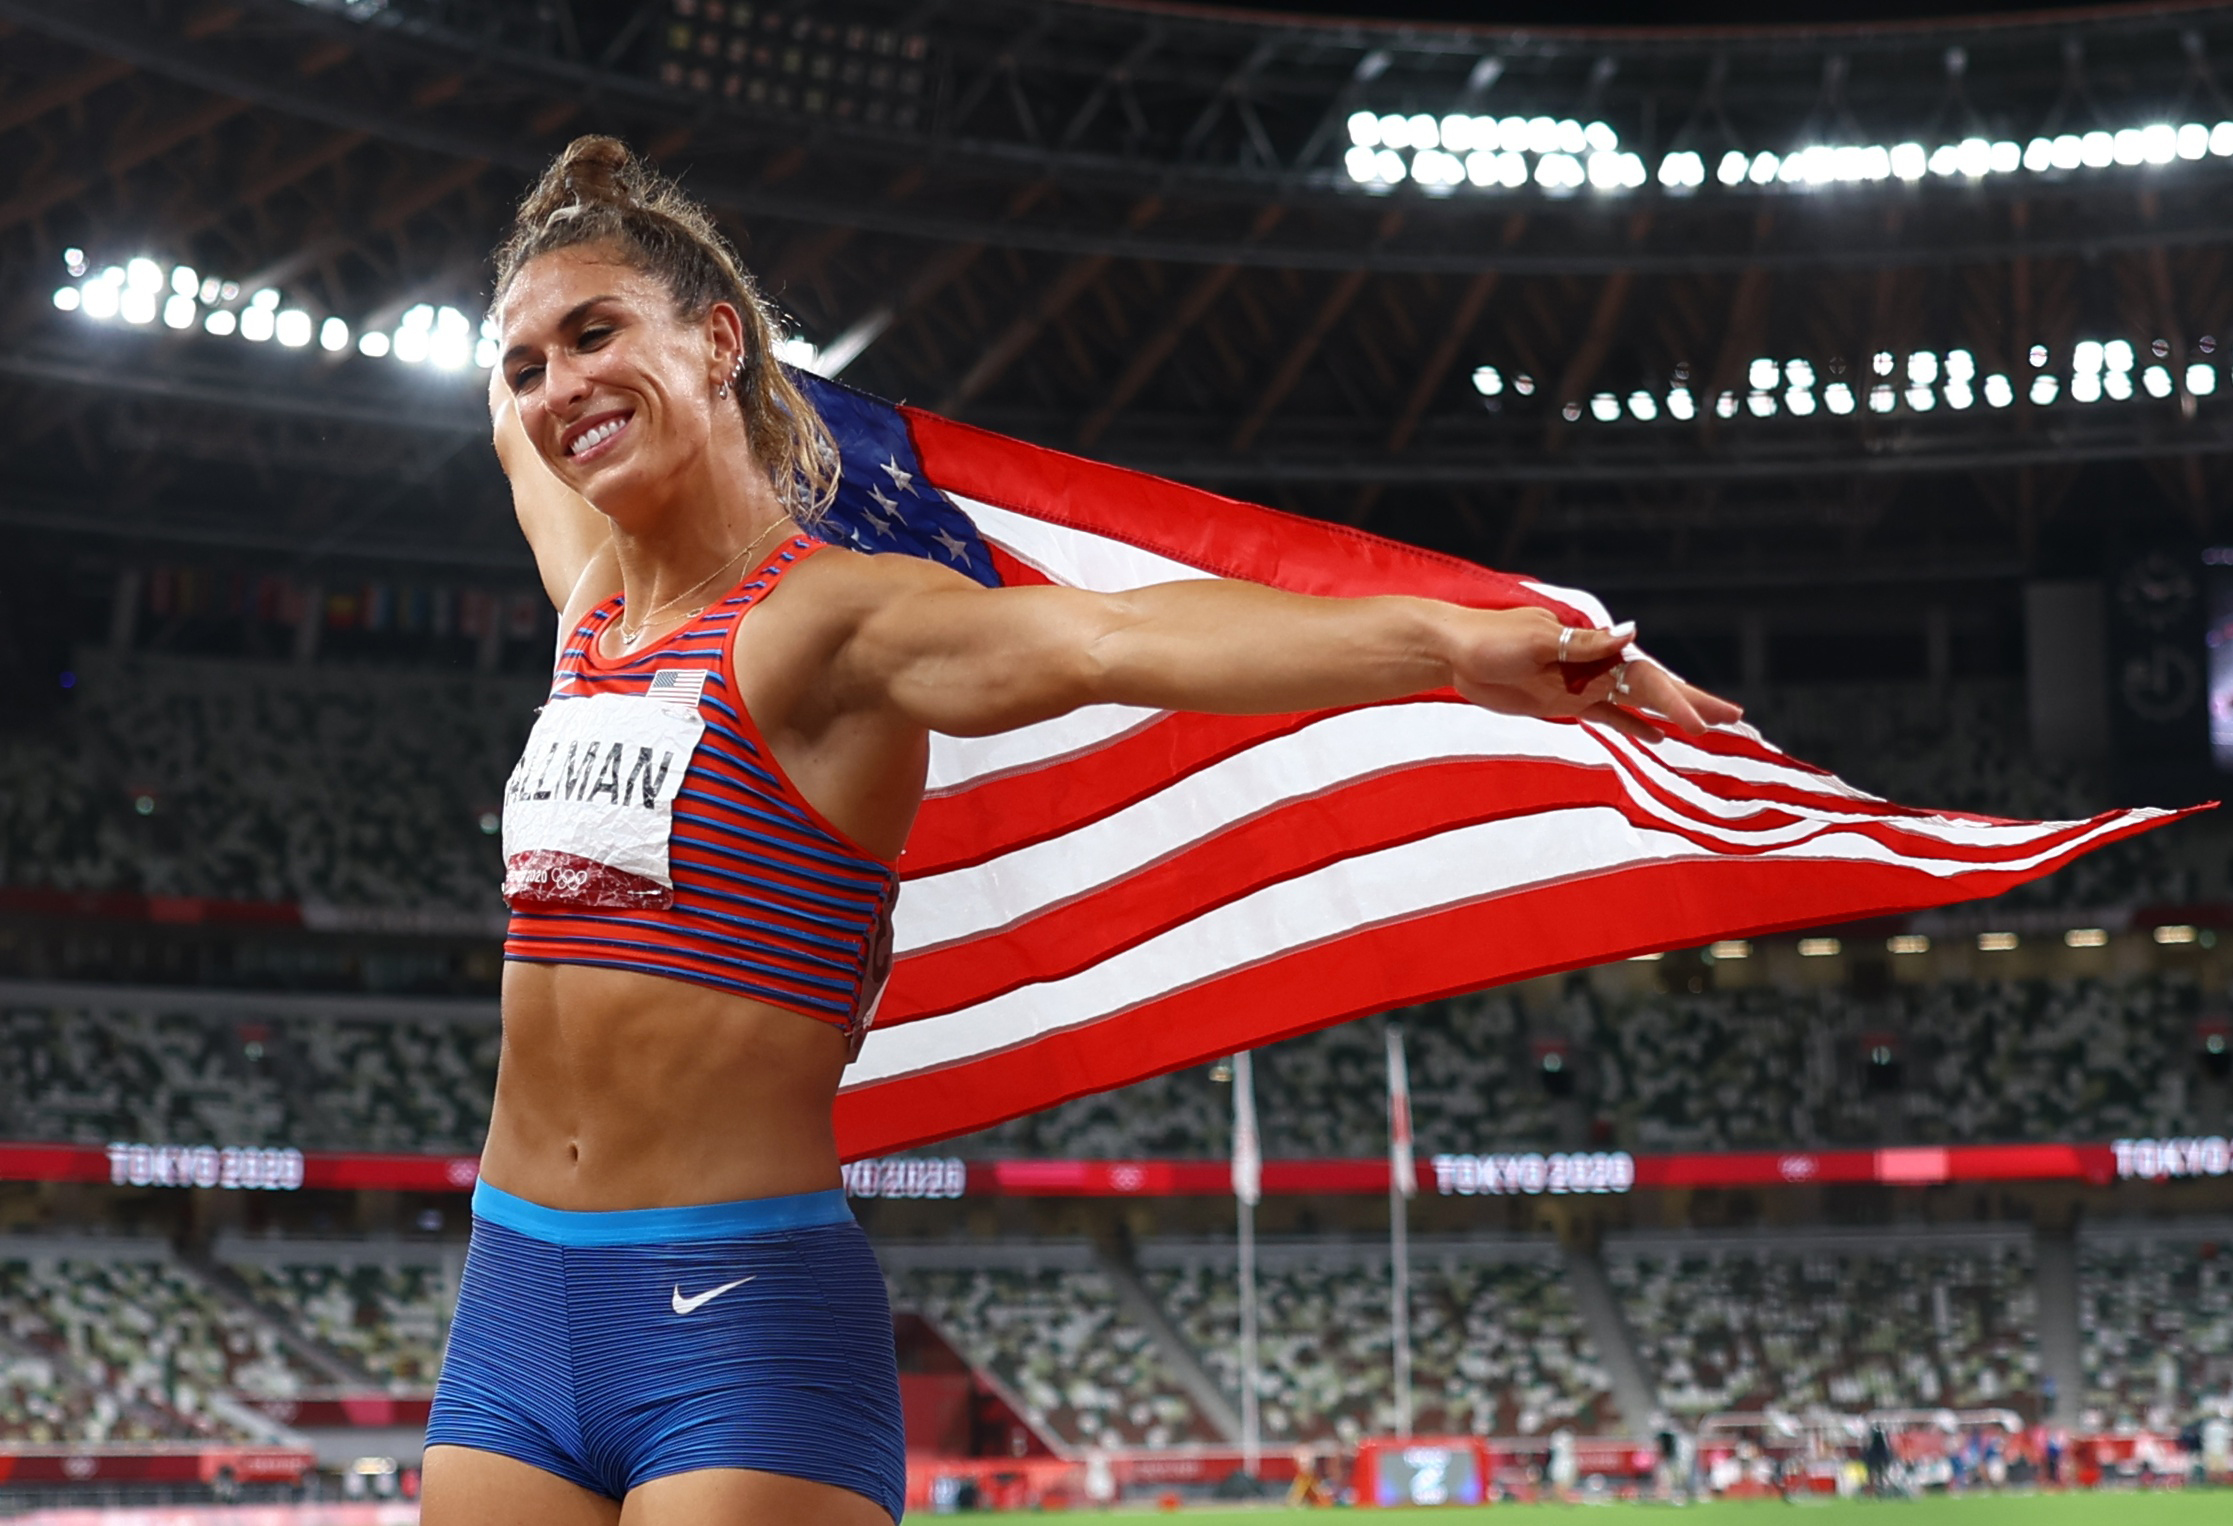 Tokyo 2020 Olympics - Athletics - Women's Discus Throw - Final - Olympic Stadium, Tokyo, Japan - August 2, 2021. Valarie Allman of the United States celebrates with her national flag after winning gold REUTERS/Kai Pfaffenbach